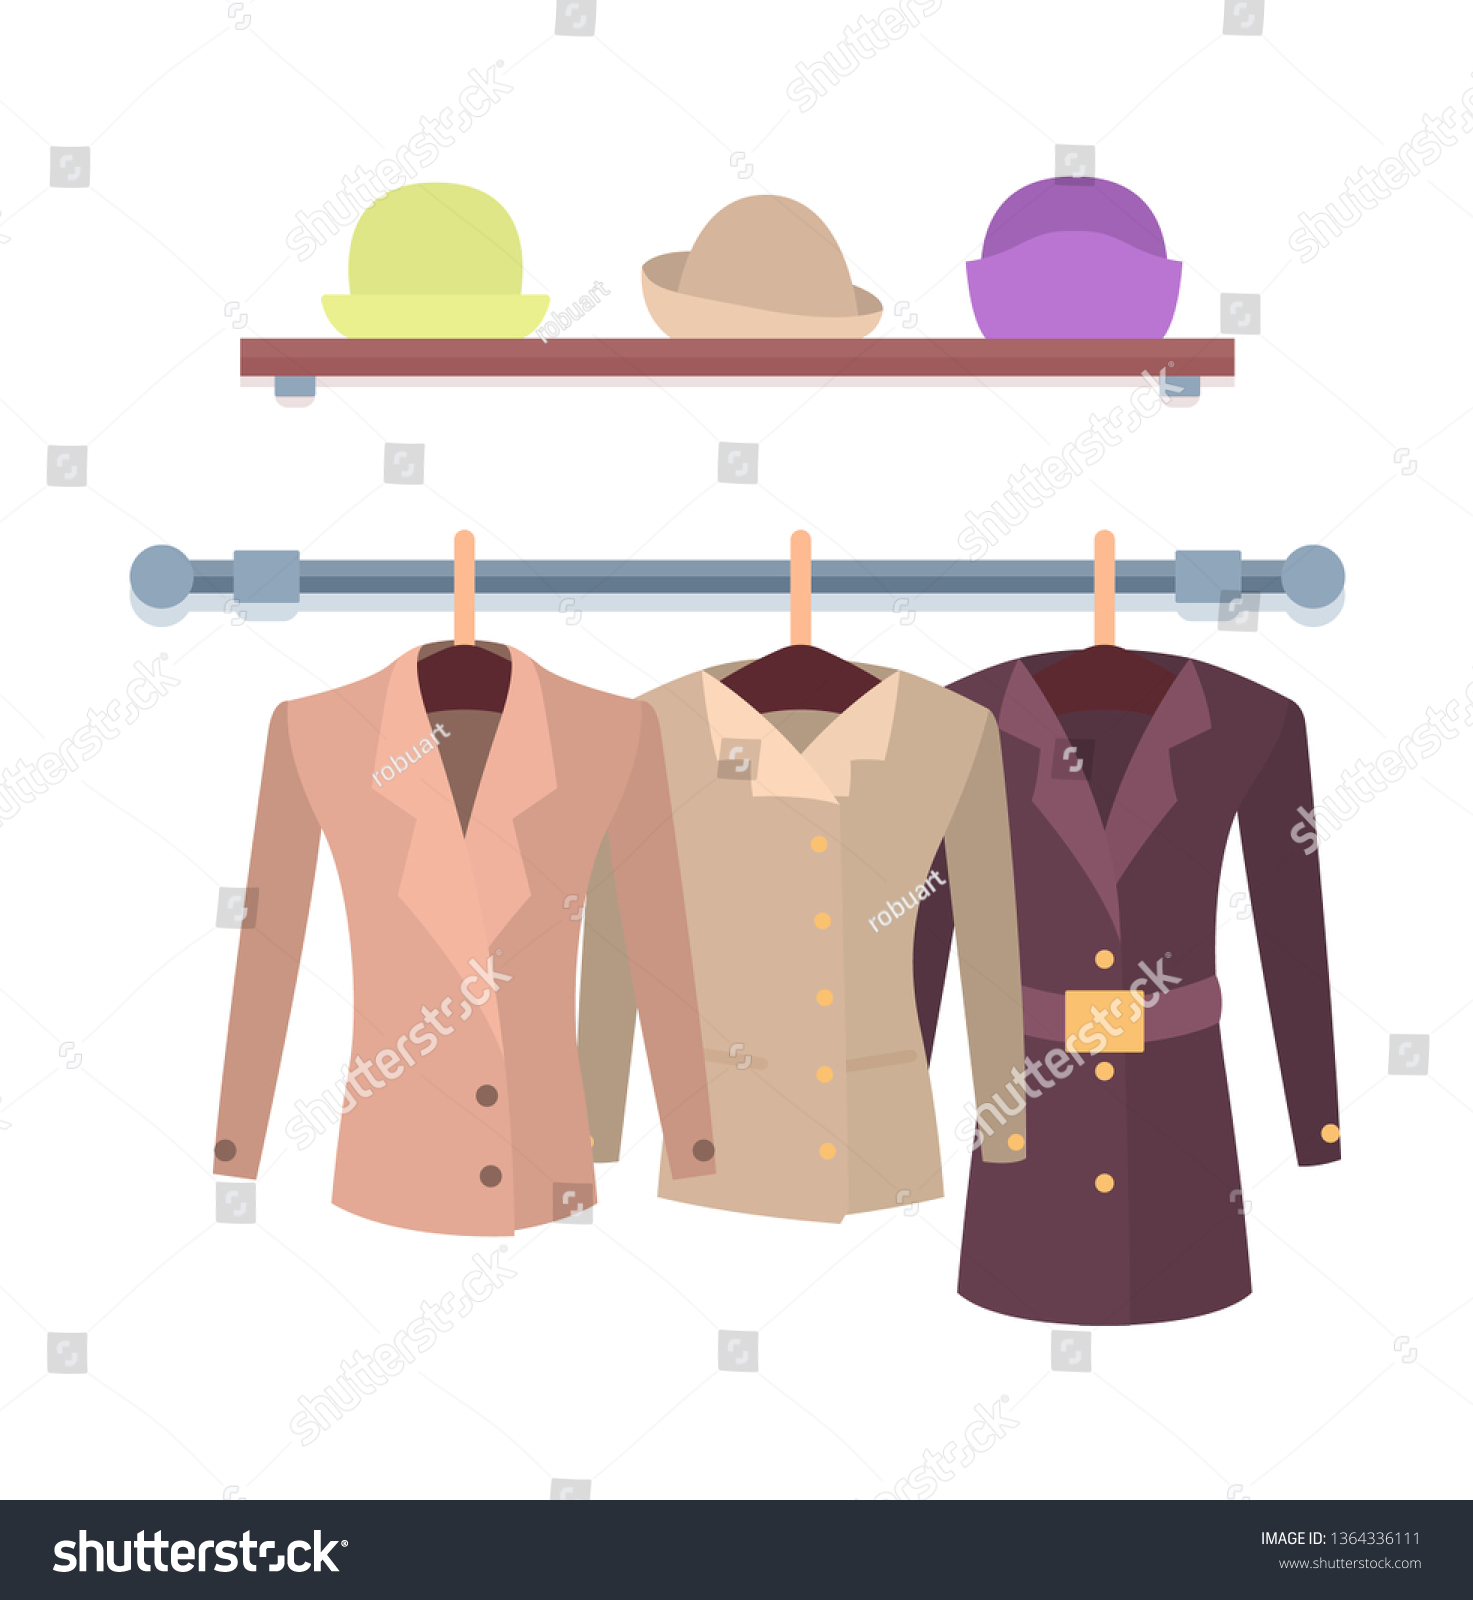 a7bd0d3f Set of women jackets outer garment and shelf with hats shop window design  coats hanging on